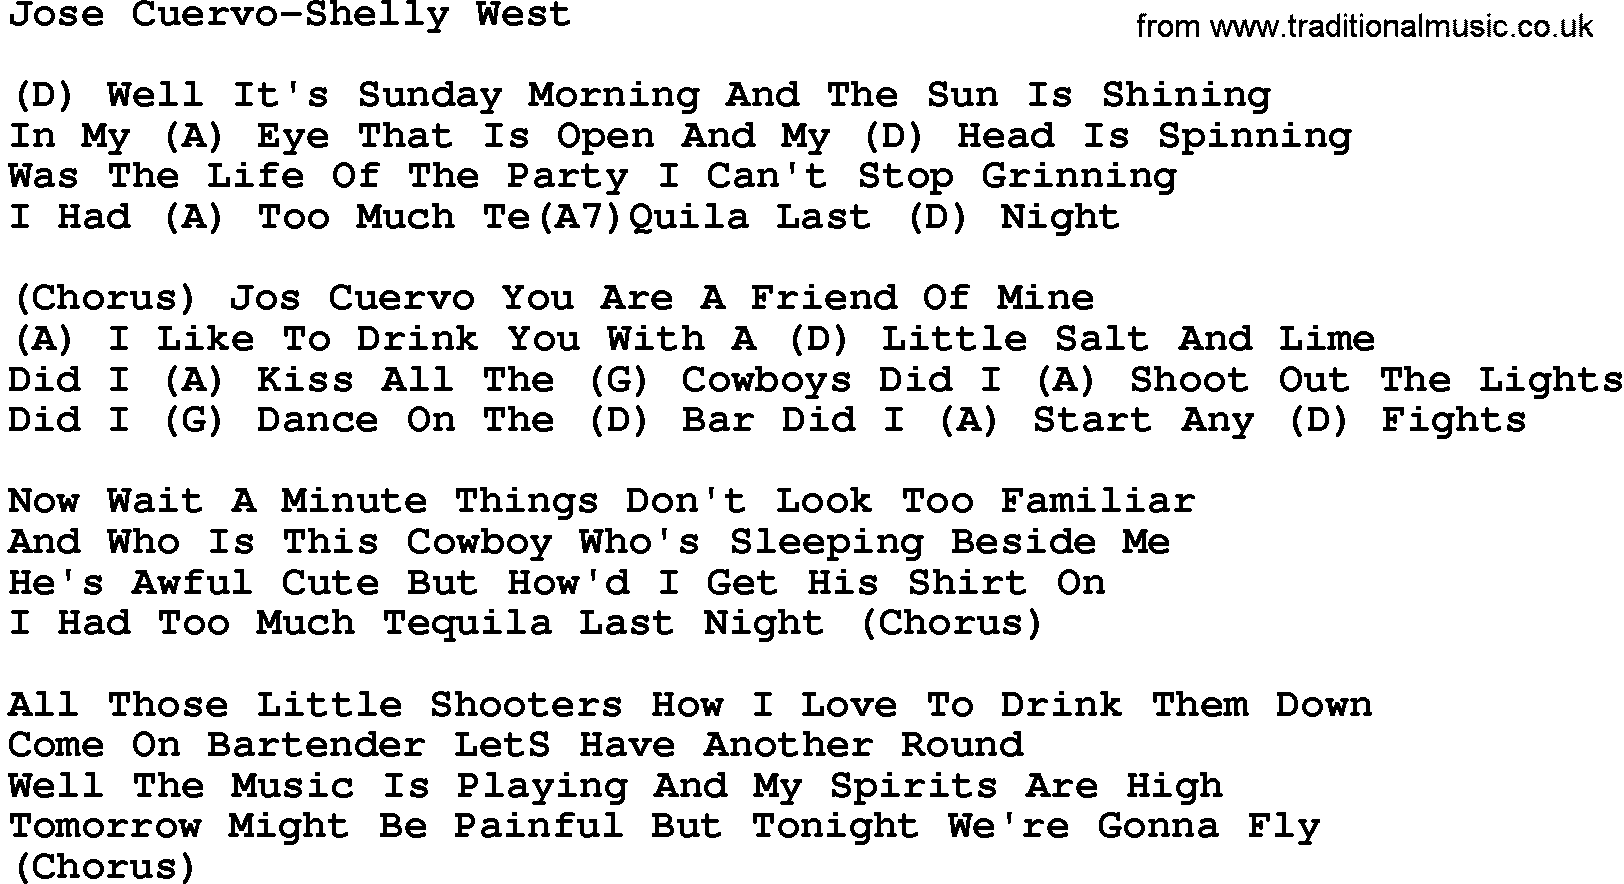 Country musicjose cuervo shelly west lyrics and chords hexwebz Images